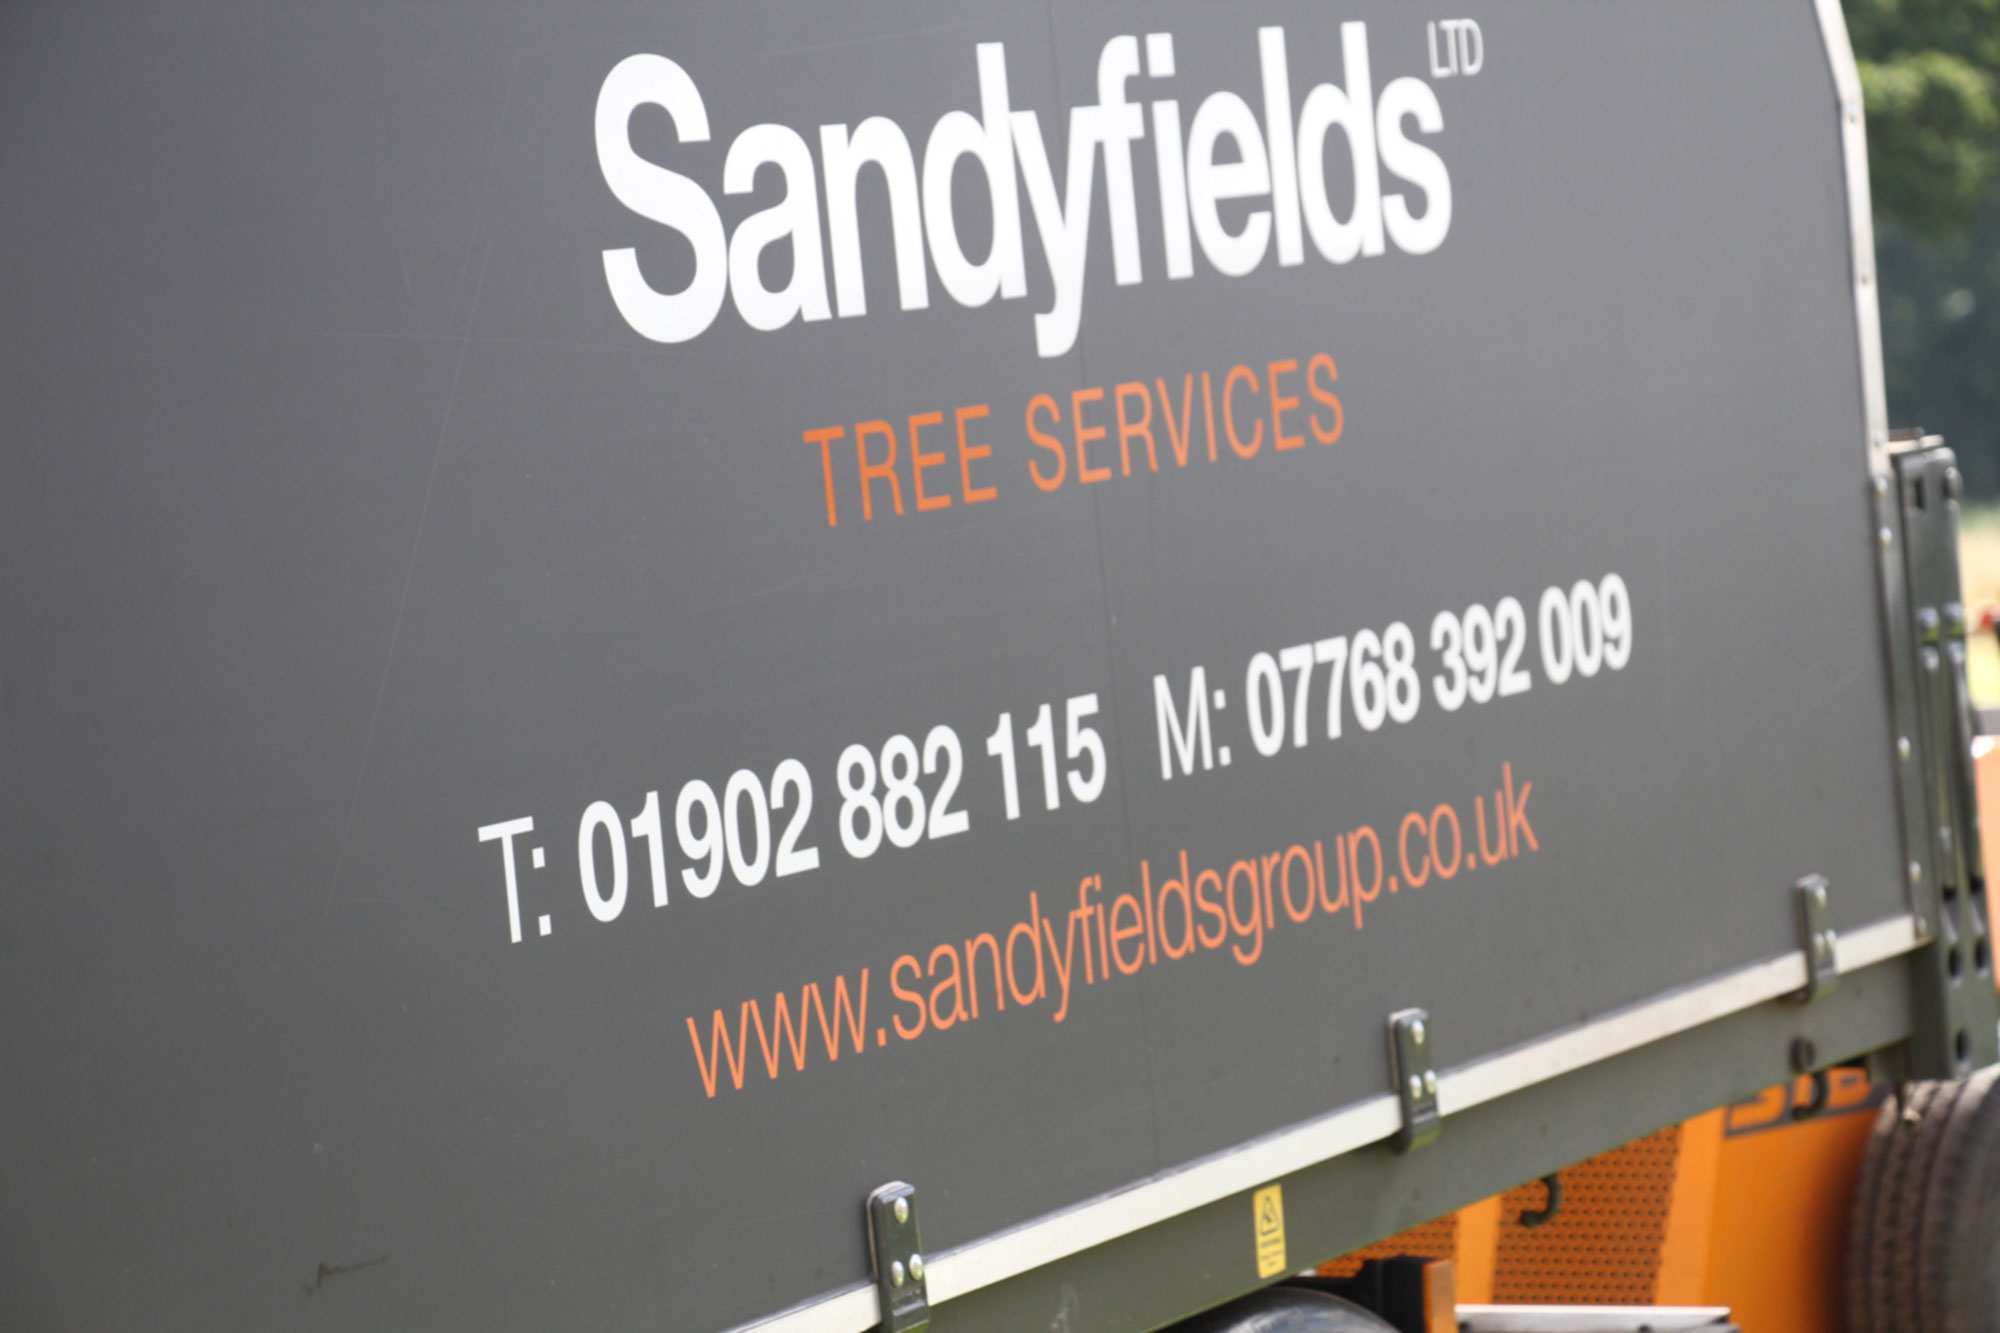 Sandyfields tree services Kingswinford, Dudley